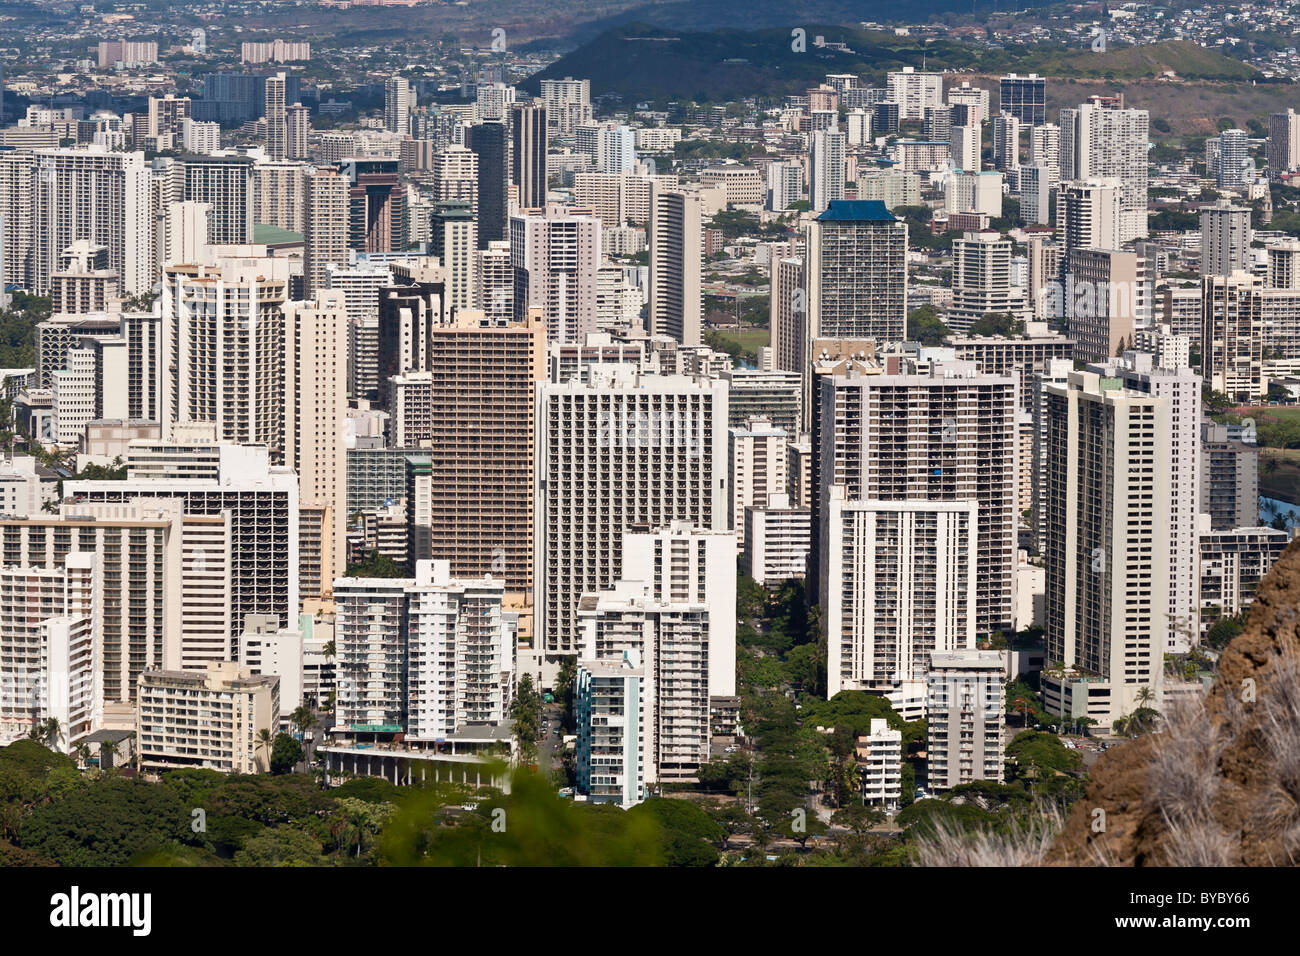 Skyscrapers of Waikiki. Tall buildings dominate the Waikiki skyline in this view from atop the Diamond Head crater. - Stock Image